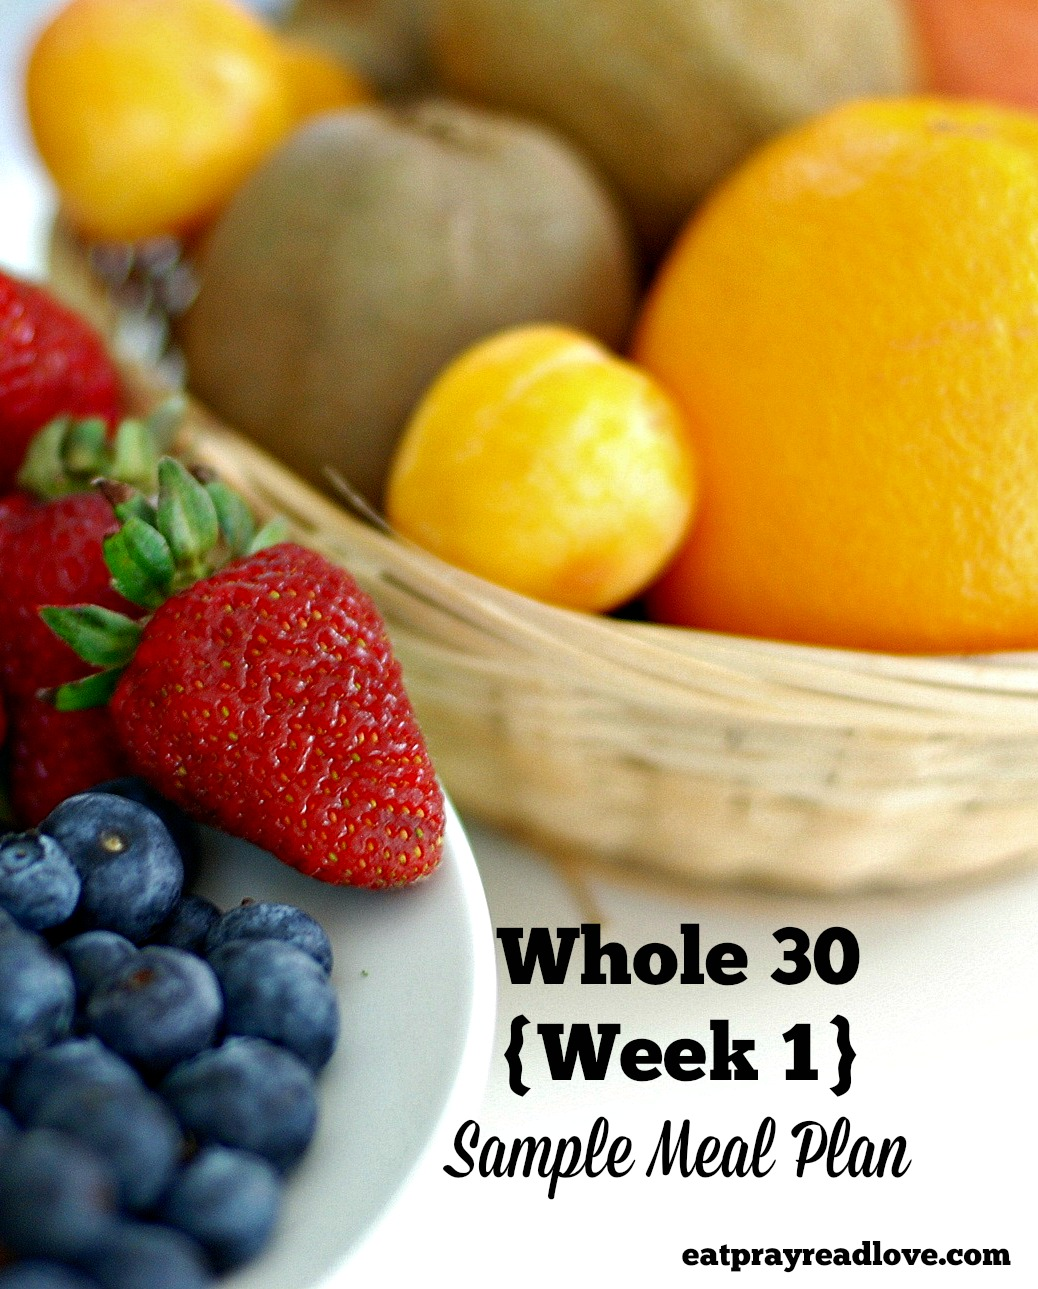 Whole30 Sample Meal Plan- Week 1 - Eat Pray {Read} Love